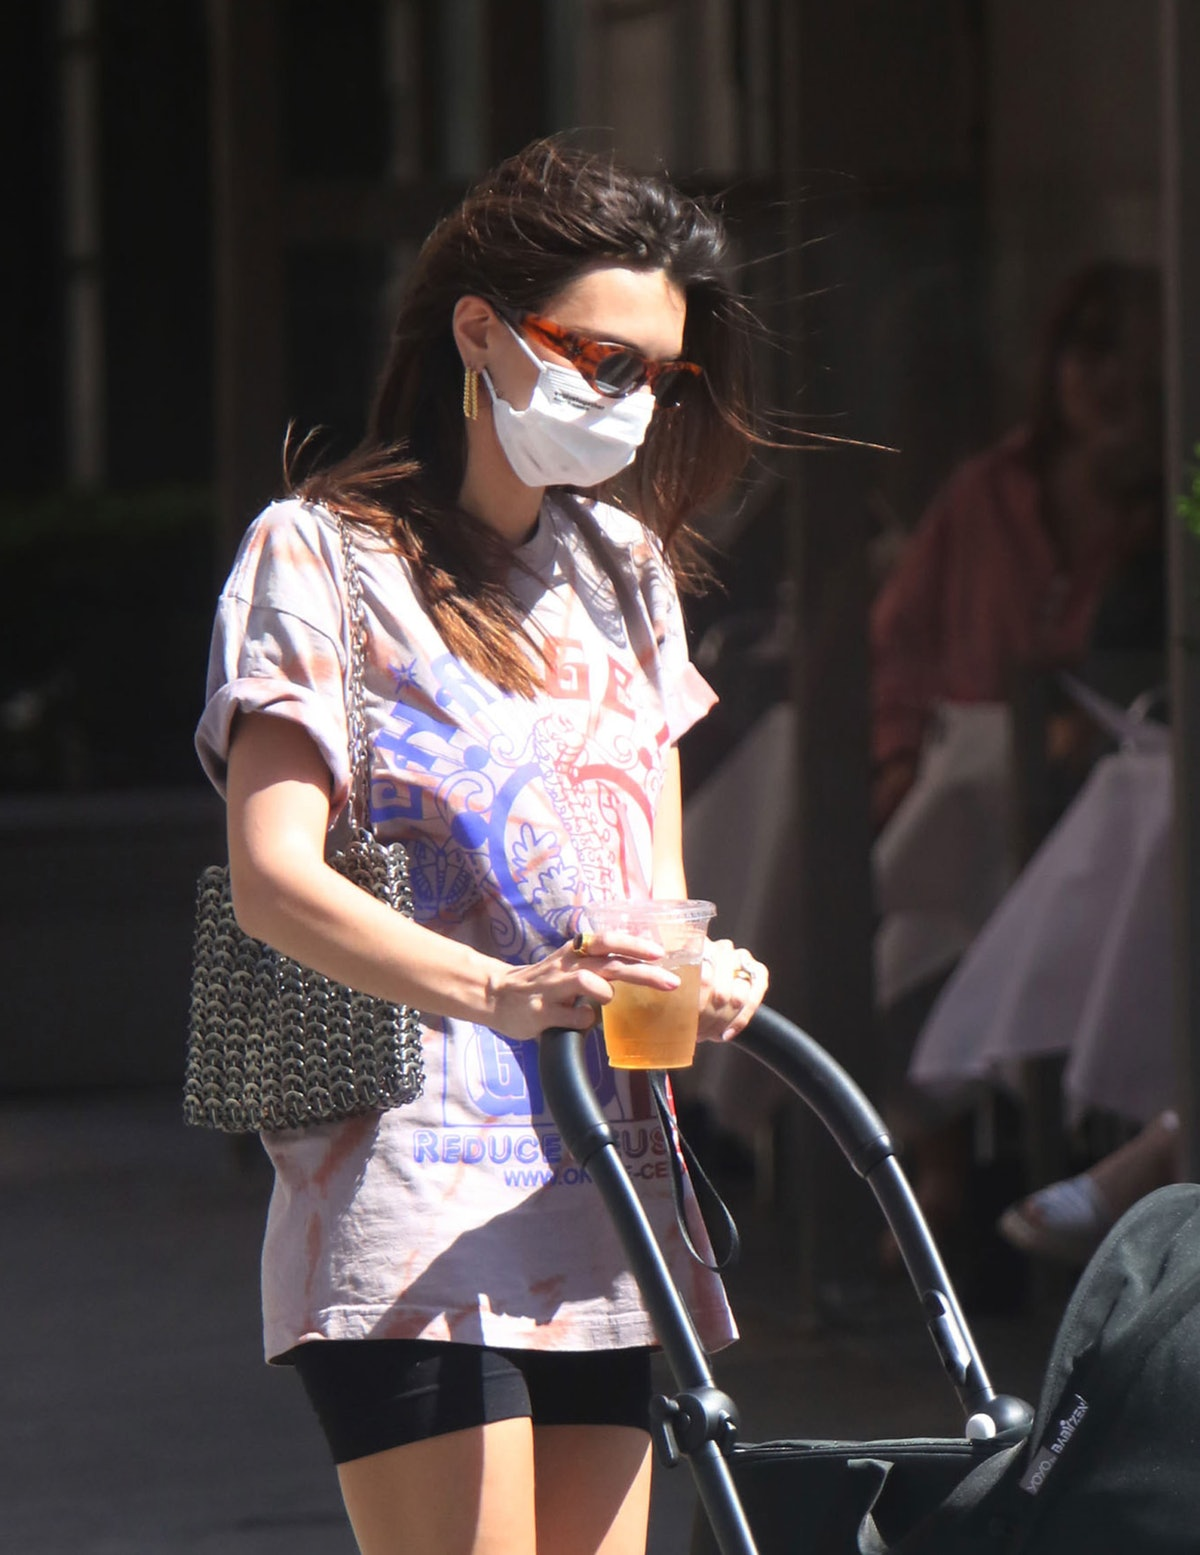 Emily Ratajkowski's oversized tee and bike shorts is serving up major summer outfit inspo.